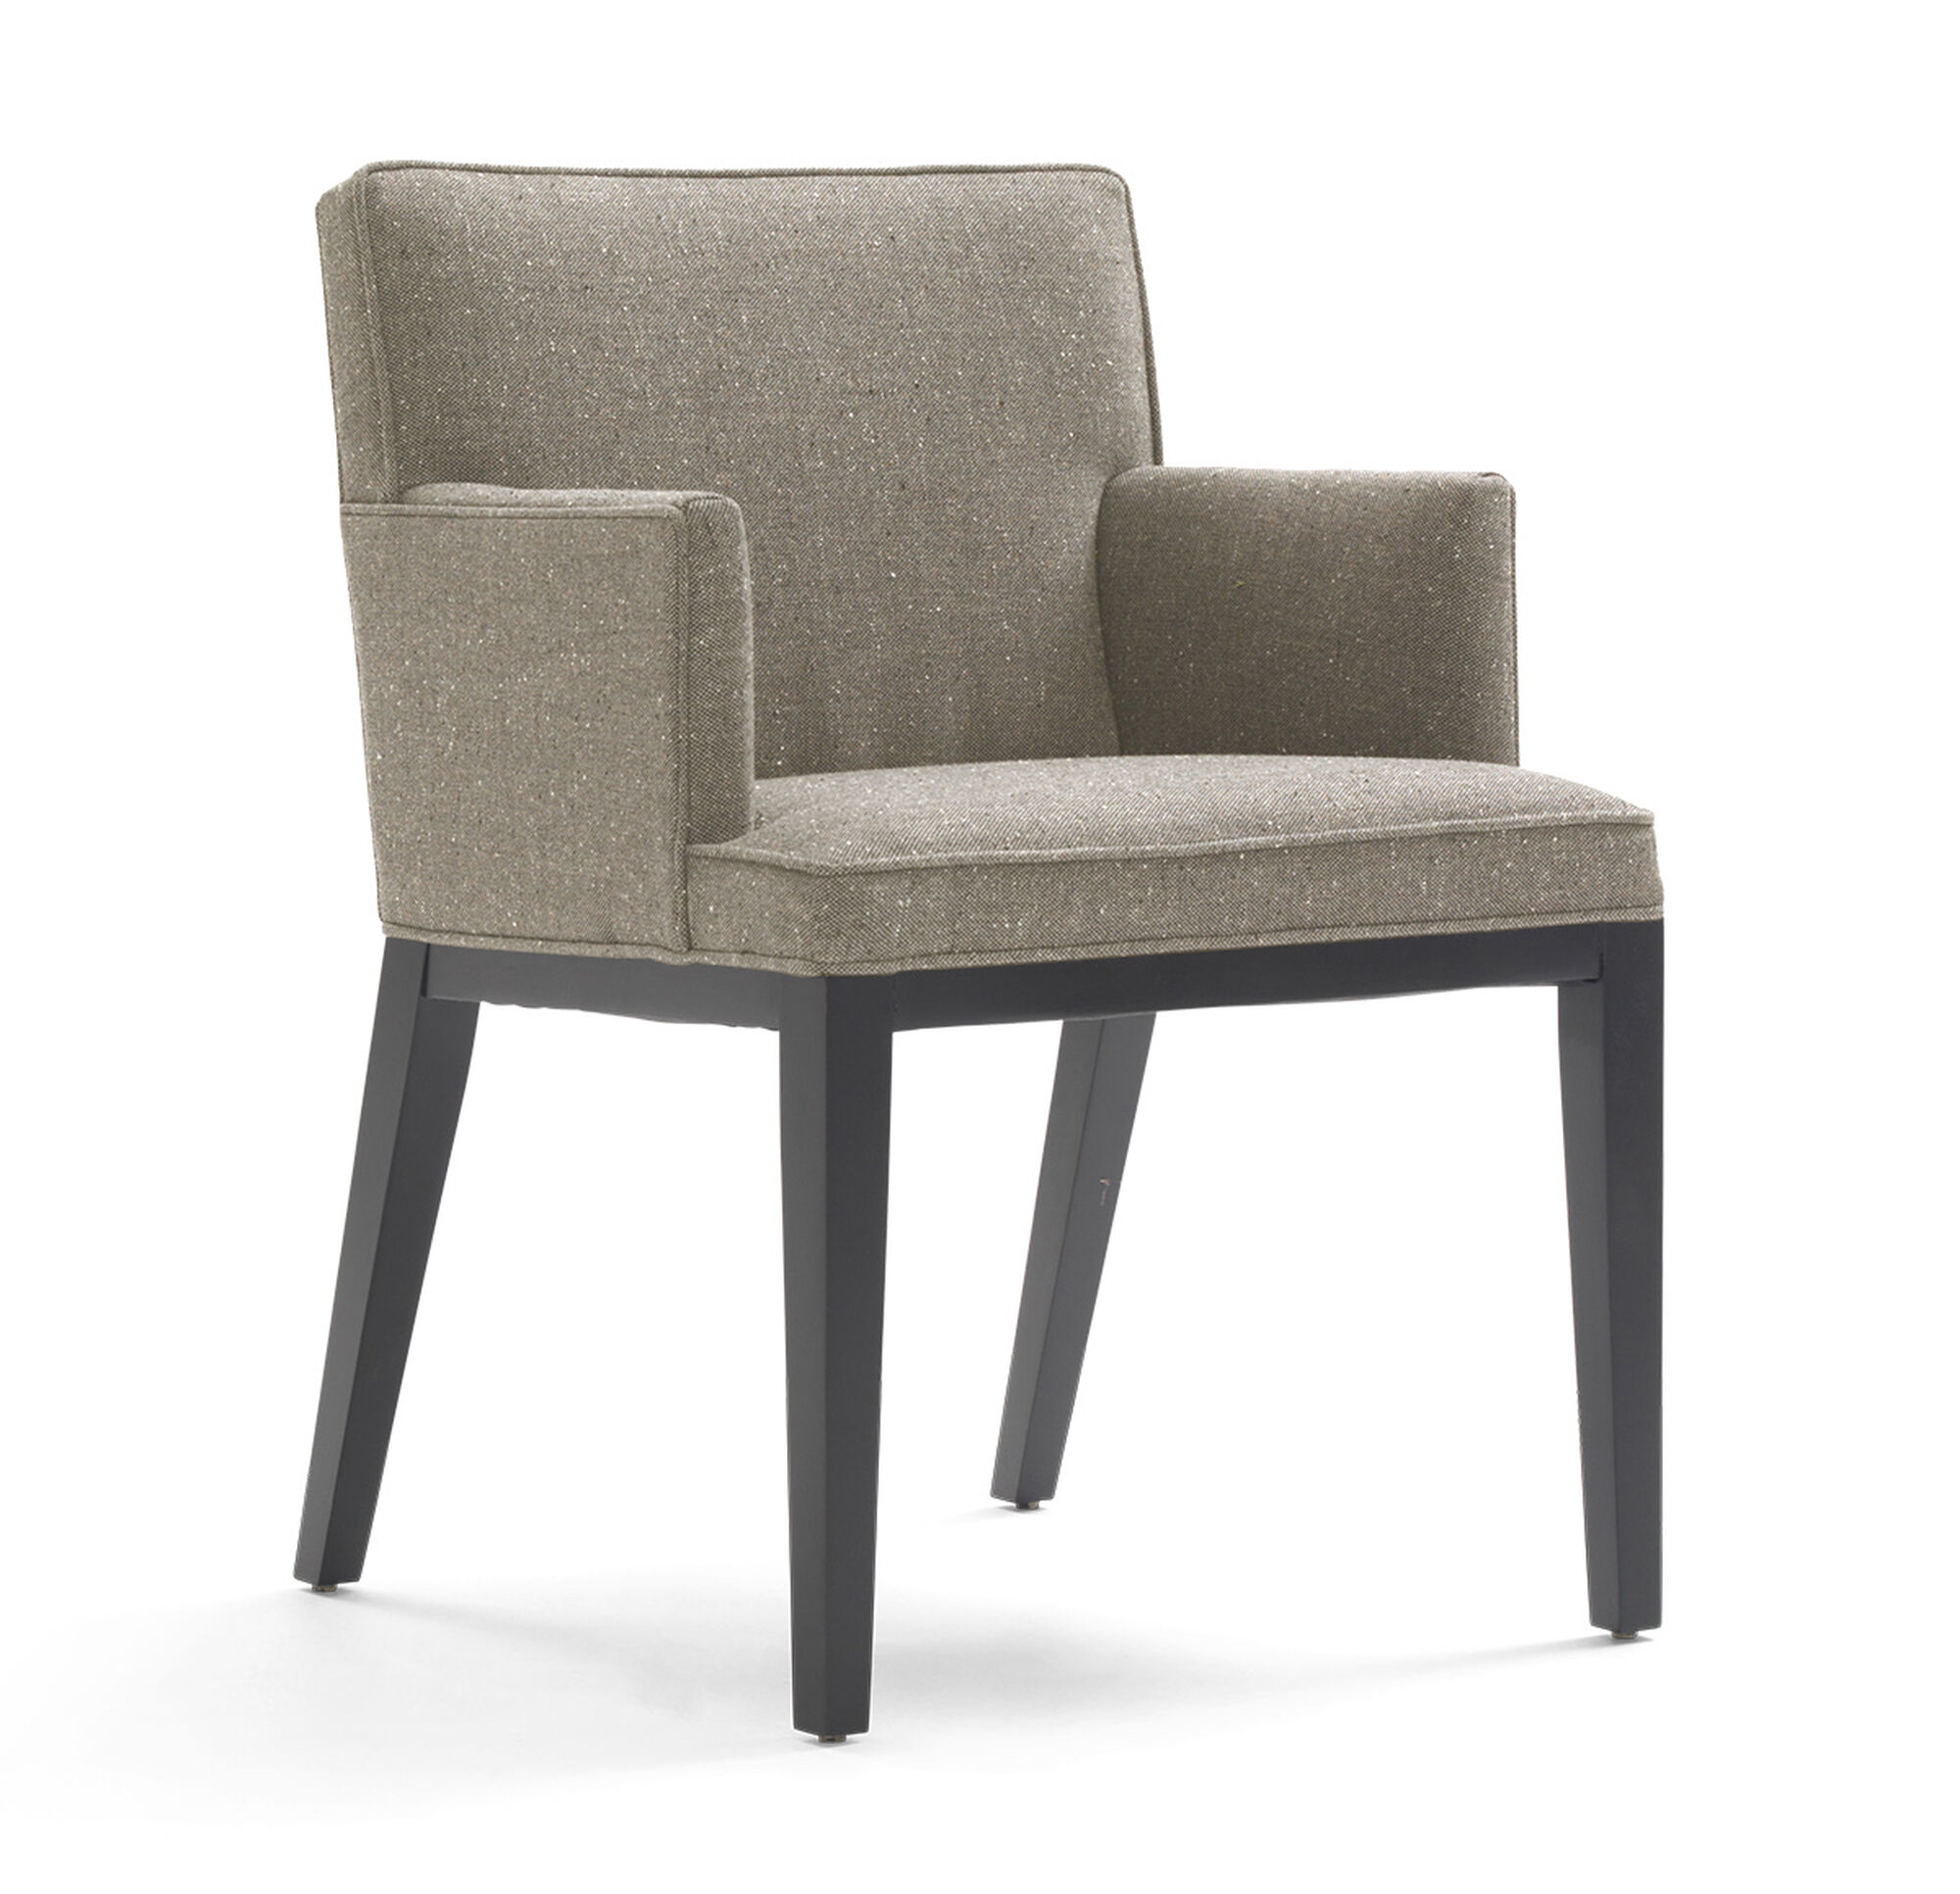 dining room arm chairs.  CAMERON ARM DINING CHAIR